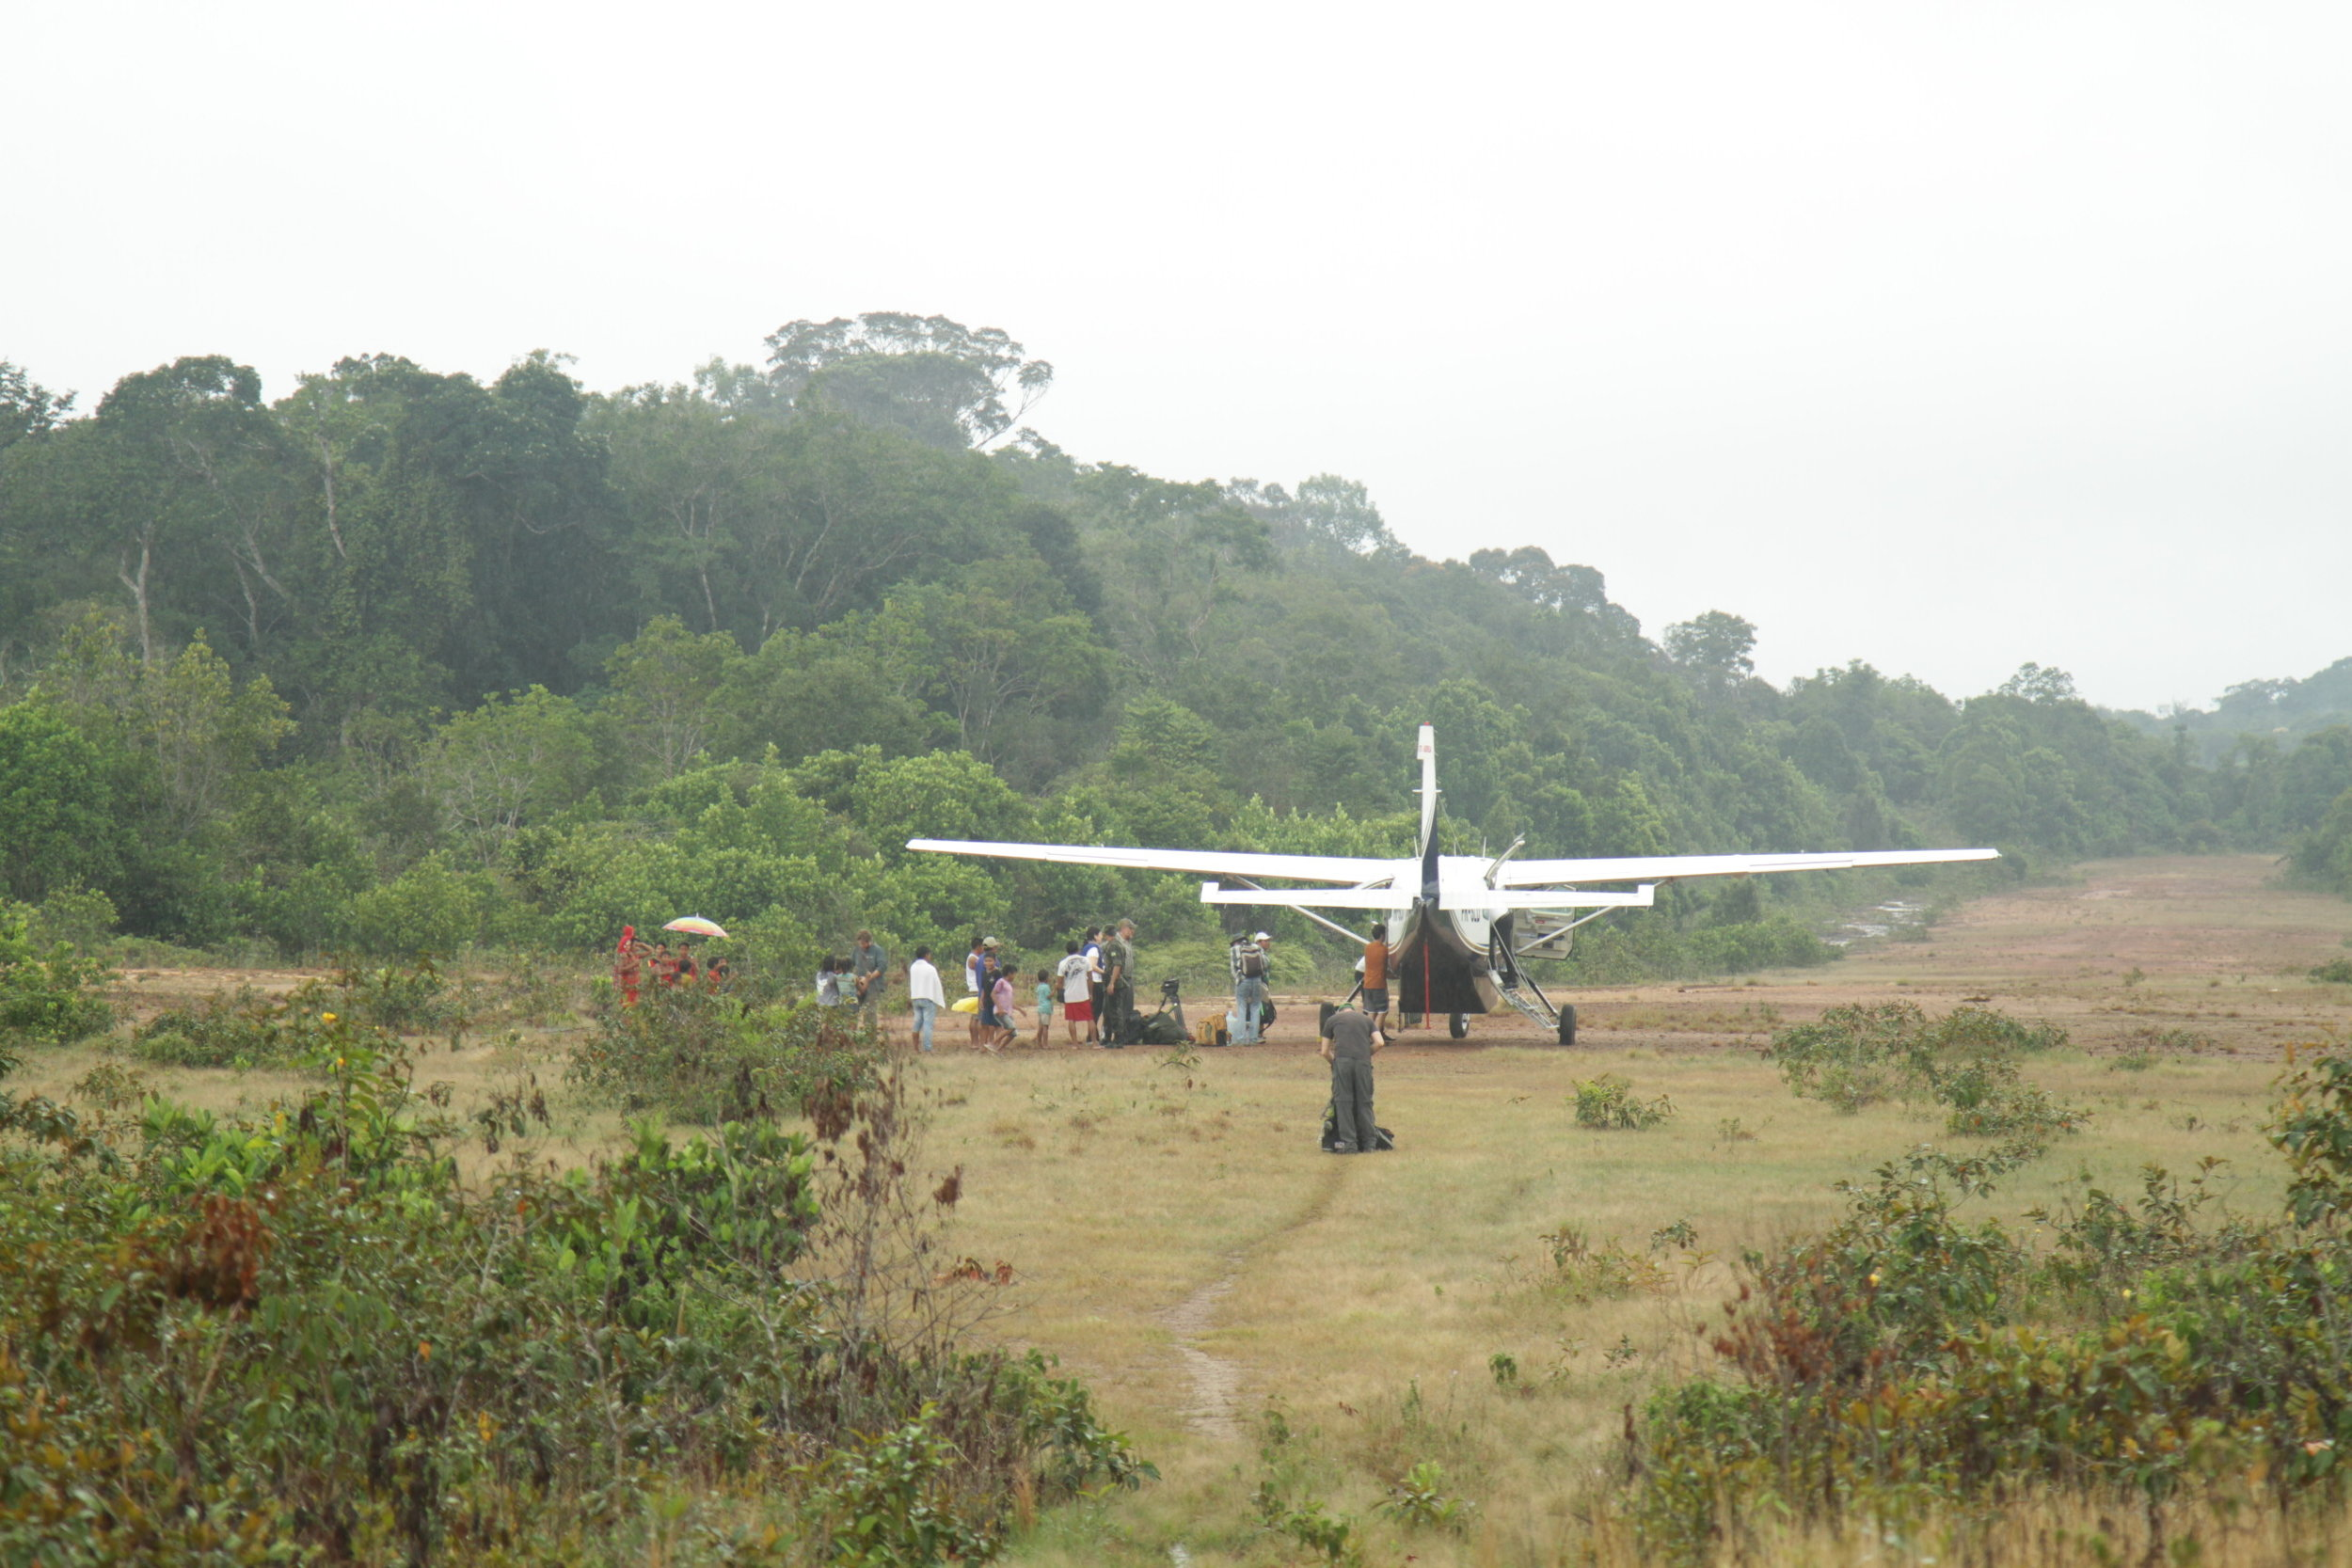 9 seater plane rented by production to access this very remote region